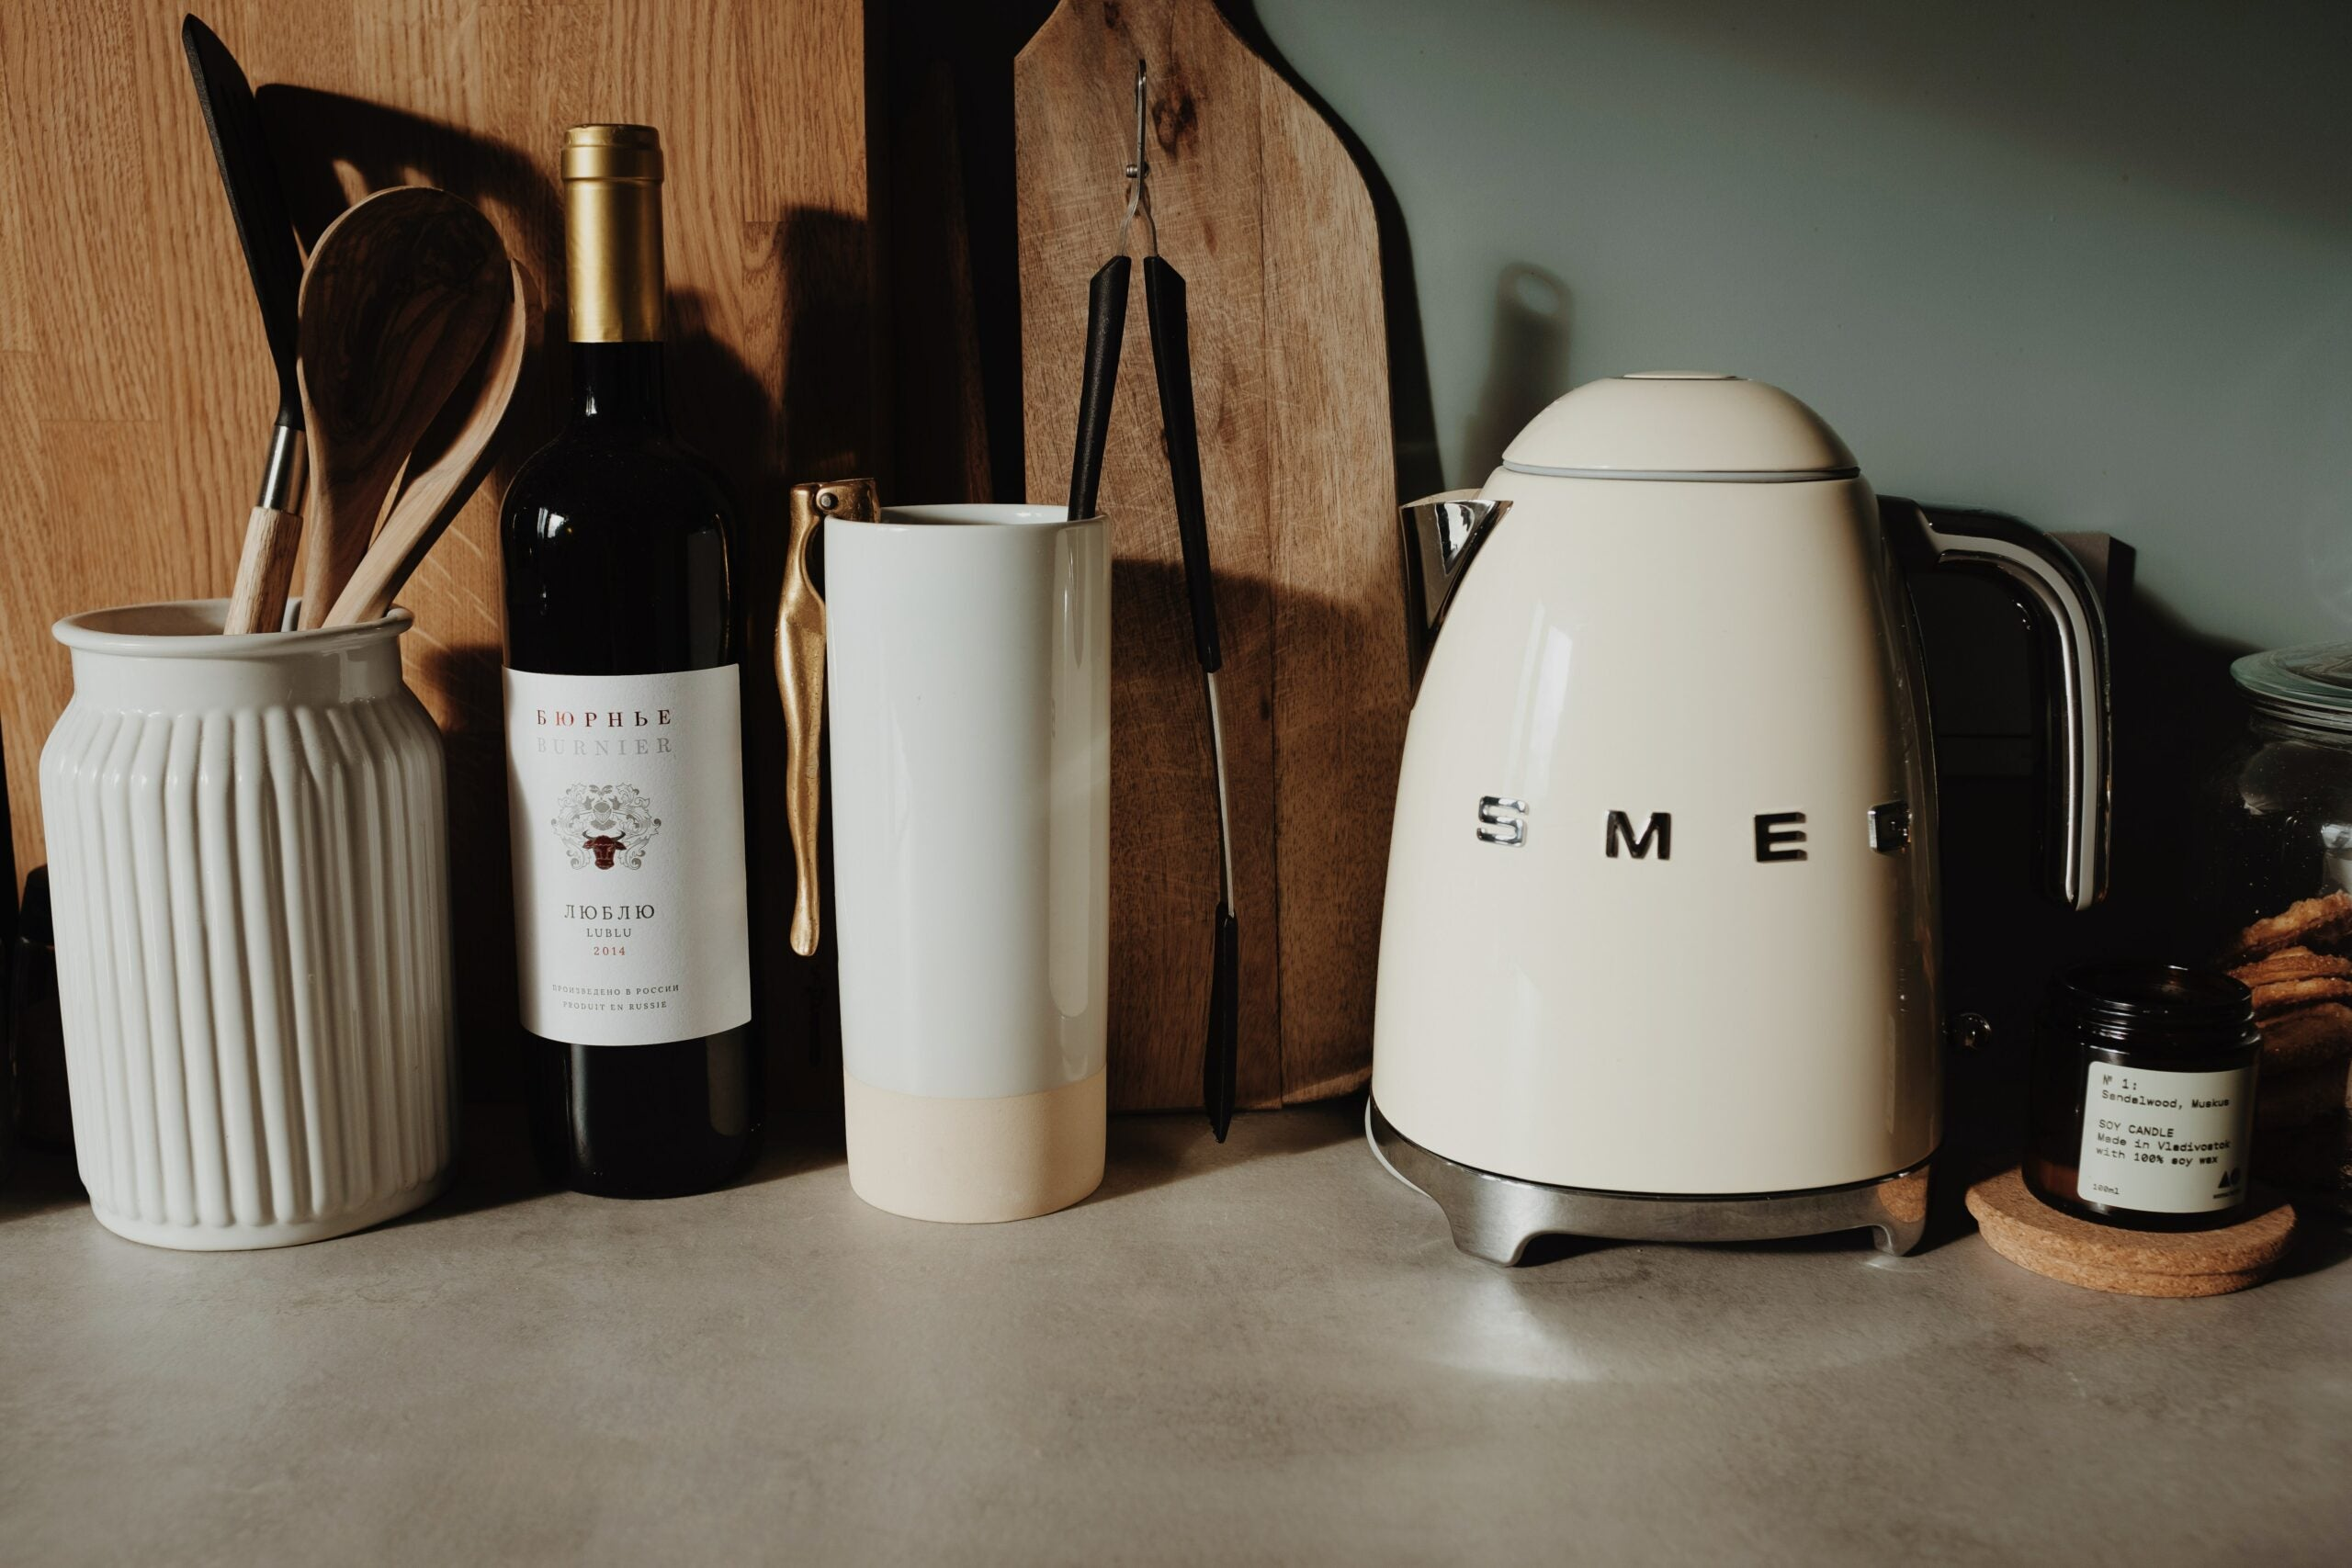 white electric kettle on a countertop with a bottle of wine and containers of kitchen tools